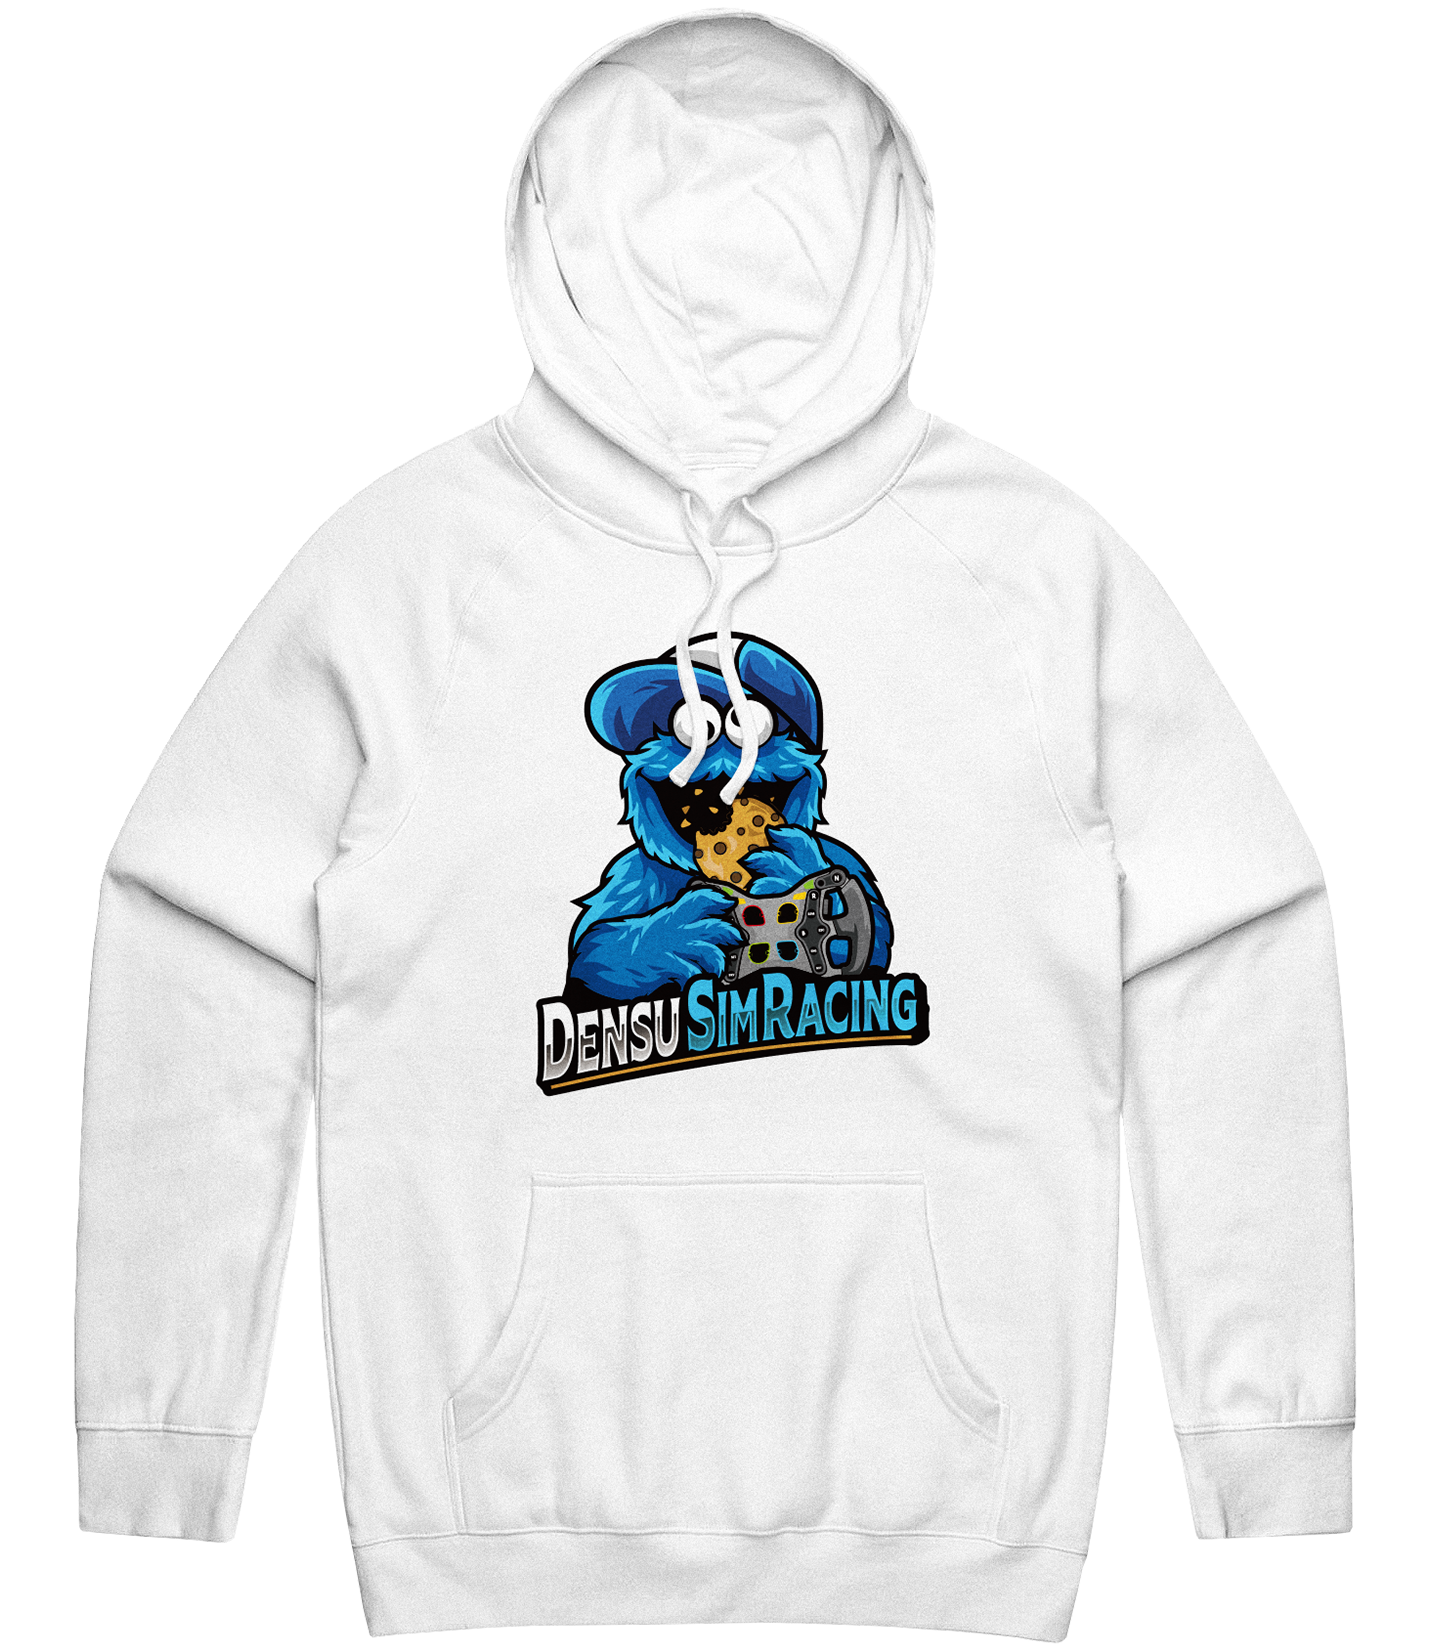 Bang Text Hoodie - White / Hoodie / Bang Esports / ARMA / Custom Esports Jerseys / Esports Jerseys / Gaming Apparel